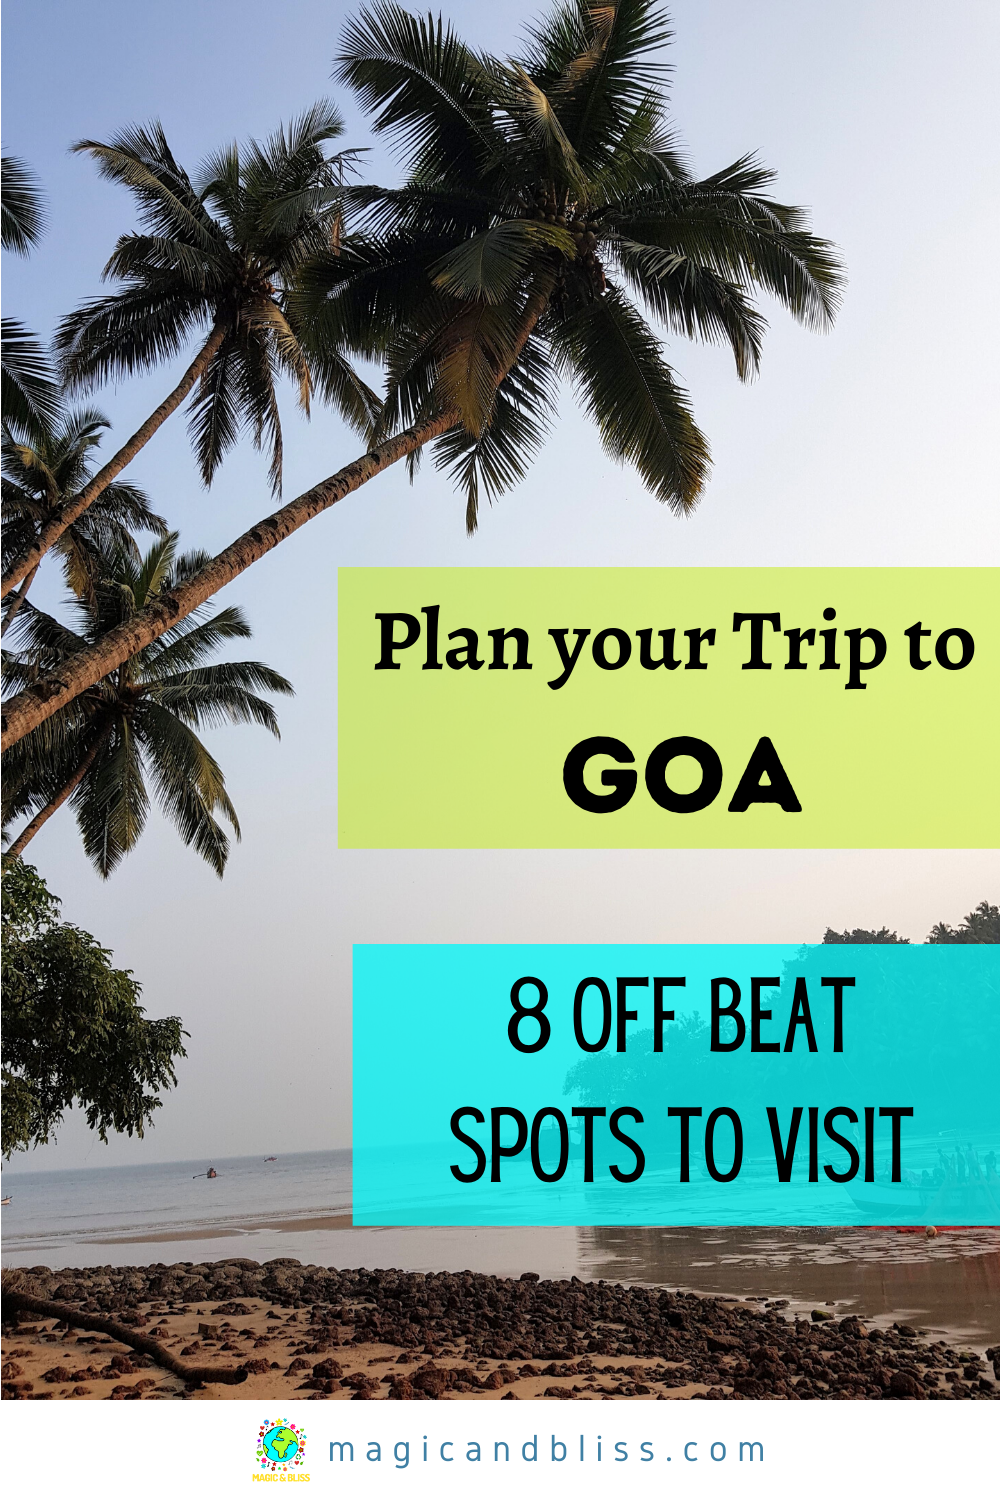 Goa is open for tourists! Plan your post pandemic goa trip now. Do not miss these off beat places to visit in Goa to quench your wanderlust needs. Read this blog to guide you to get off-beat travel ideas for Goa and plan your next Goa travel itinerary. You will learn what do do in Goa and plan an off the beaten track adventure holiday. | Future Travel Inspiration | India Travel | Best Nature Travel Destinations | #goa #goatravel #india #indiatravel #offbeattravel